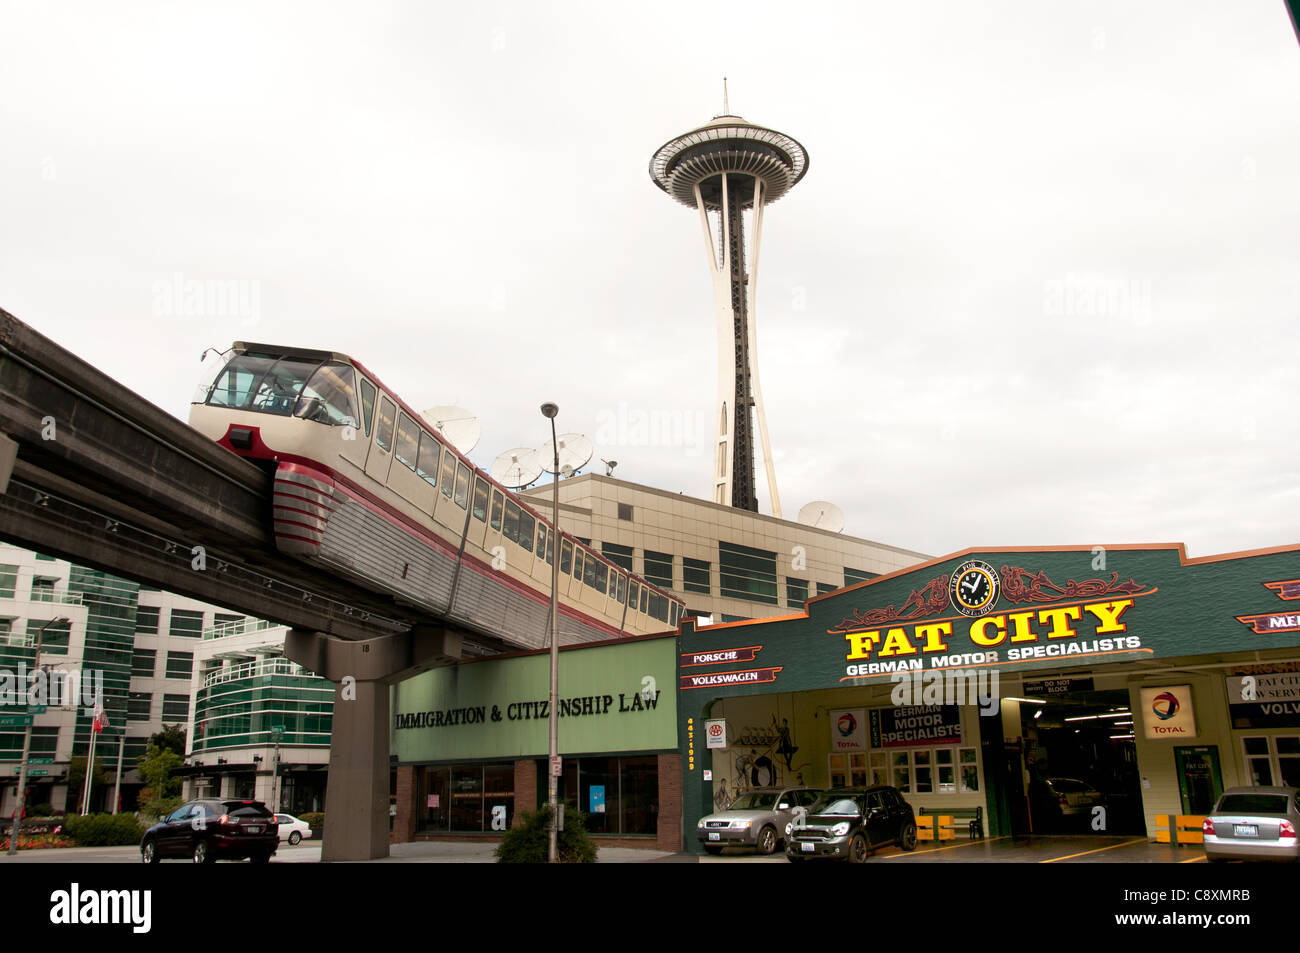 Fat City Garage Fat City Garage Seattle German Motor Specialist EMP and Space Needle Monorail  Seattle Washington - Stock Image